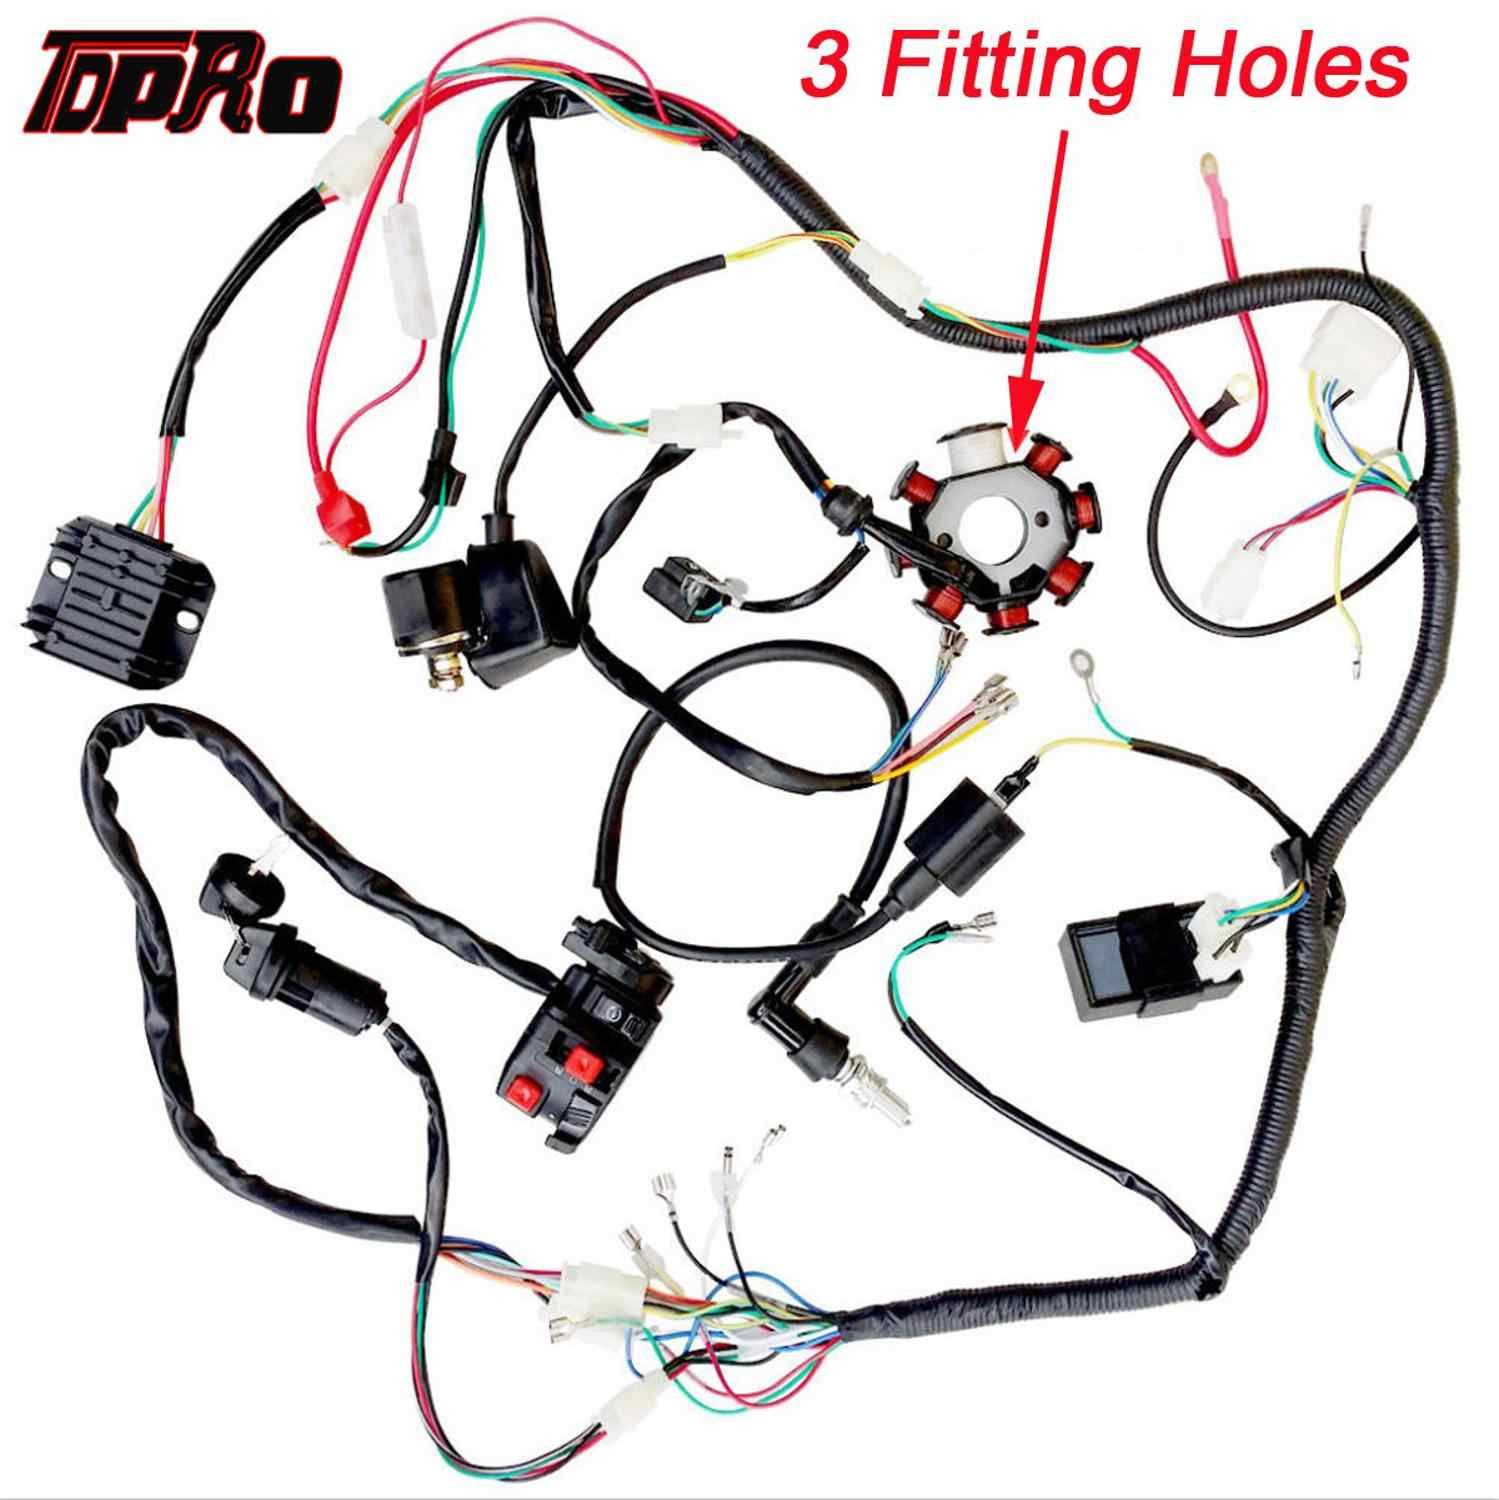 [ANLQ_8698]  TDPRO Motorcycle Full Complete Electrics Wiring Harness Loom Ignition Coil  CDI Switch For Scooter Moped 125cc~250cc Pitbike Go K| | - AliExpress | Otorcycle Wiring Harness |  | www.aliexpress.com